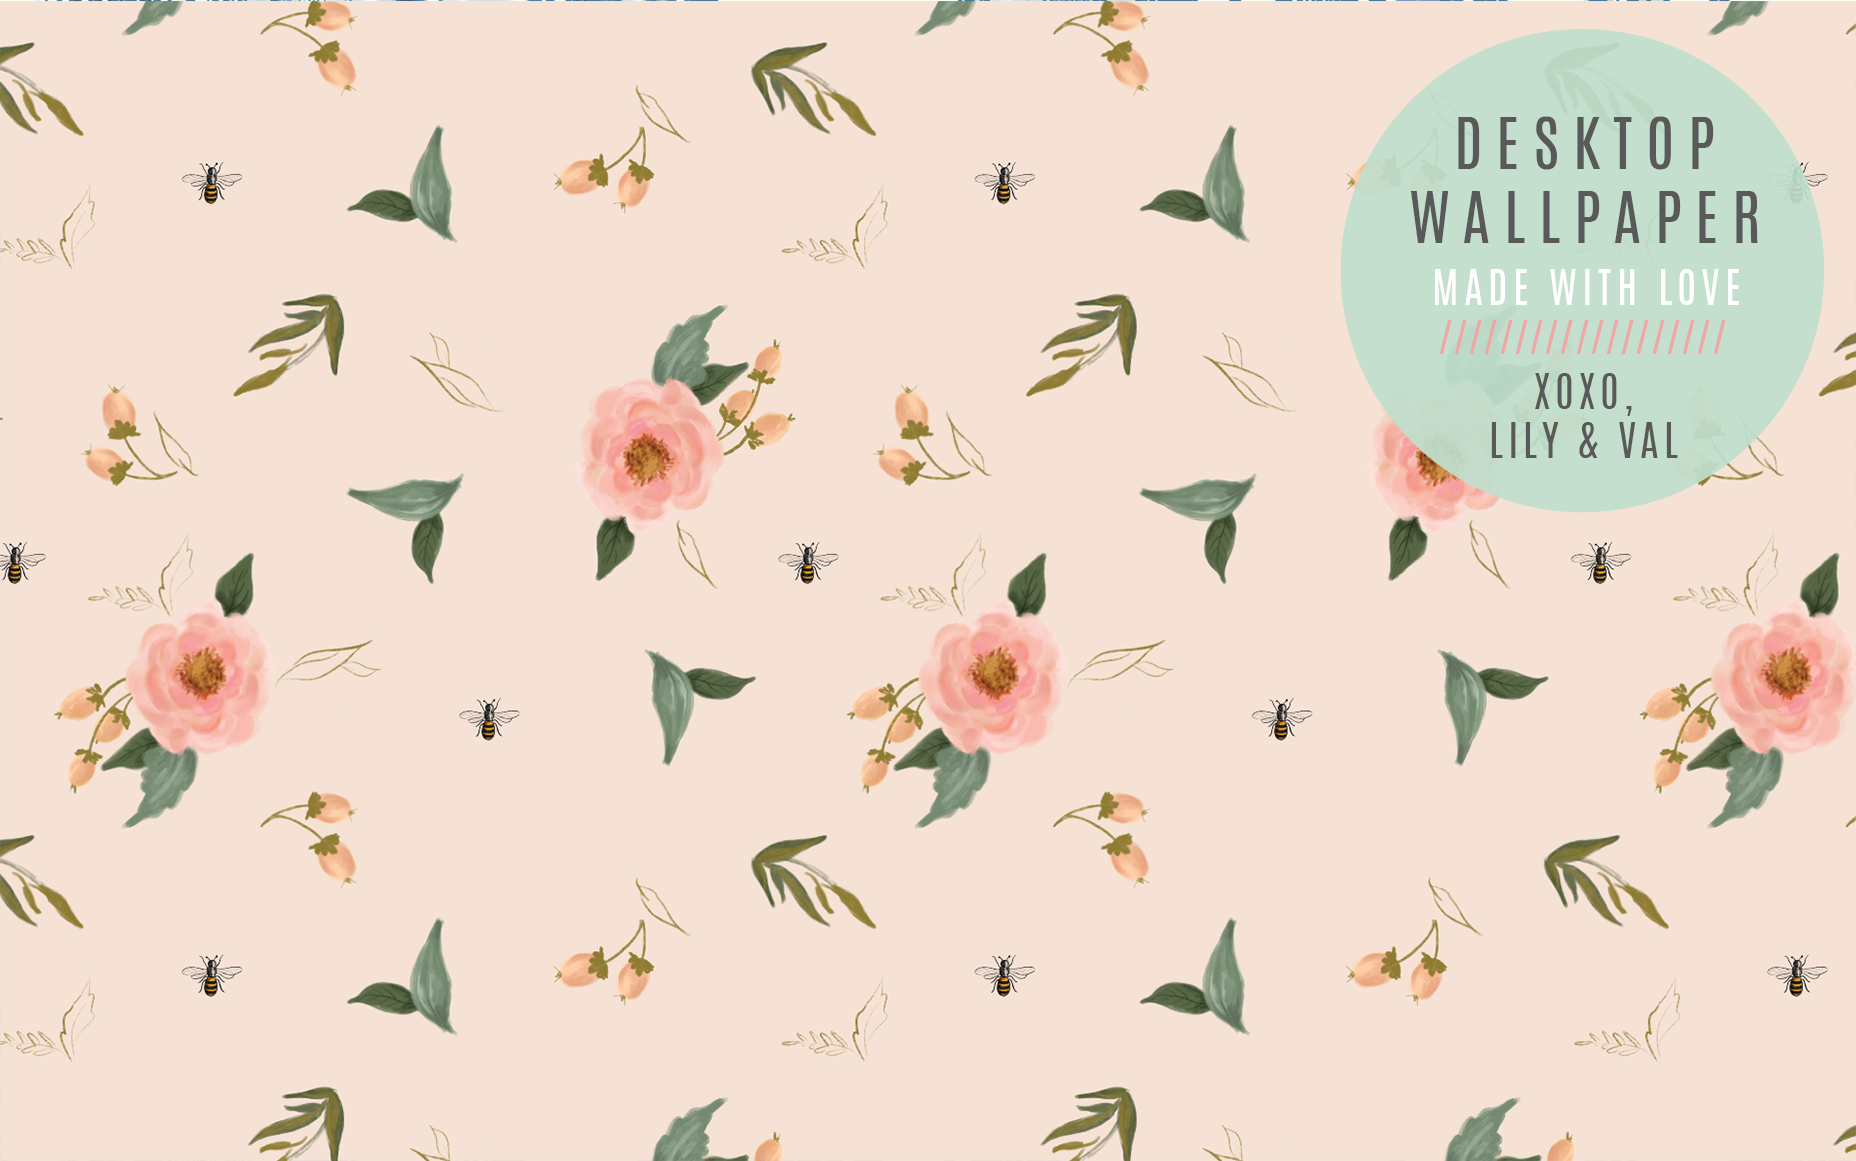 Free March Desktop with Hand-drawn florals and bees by Valerie McKeehan